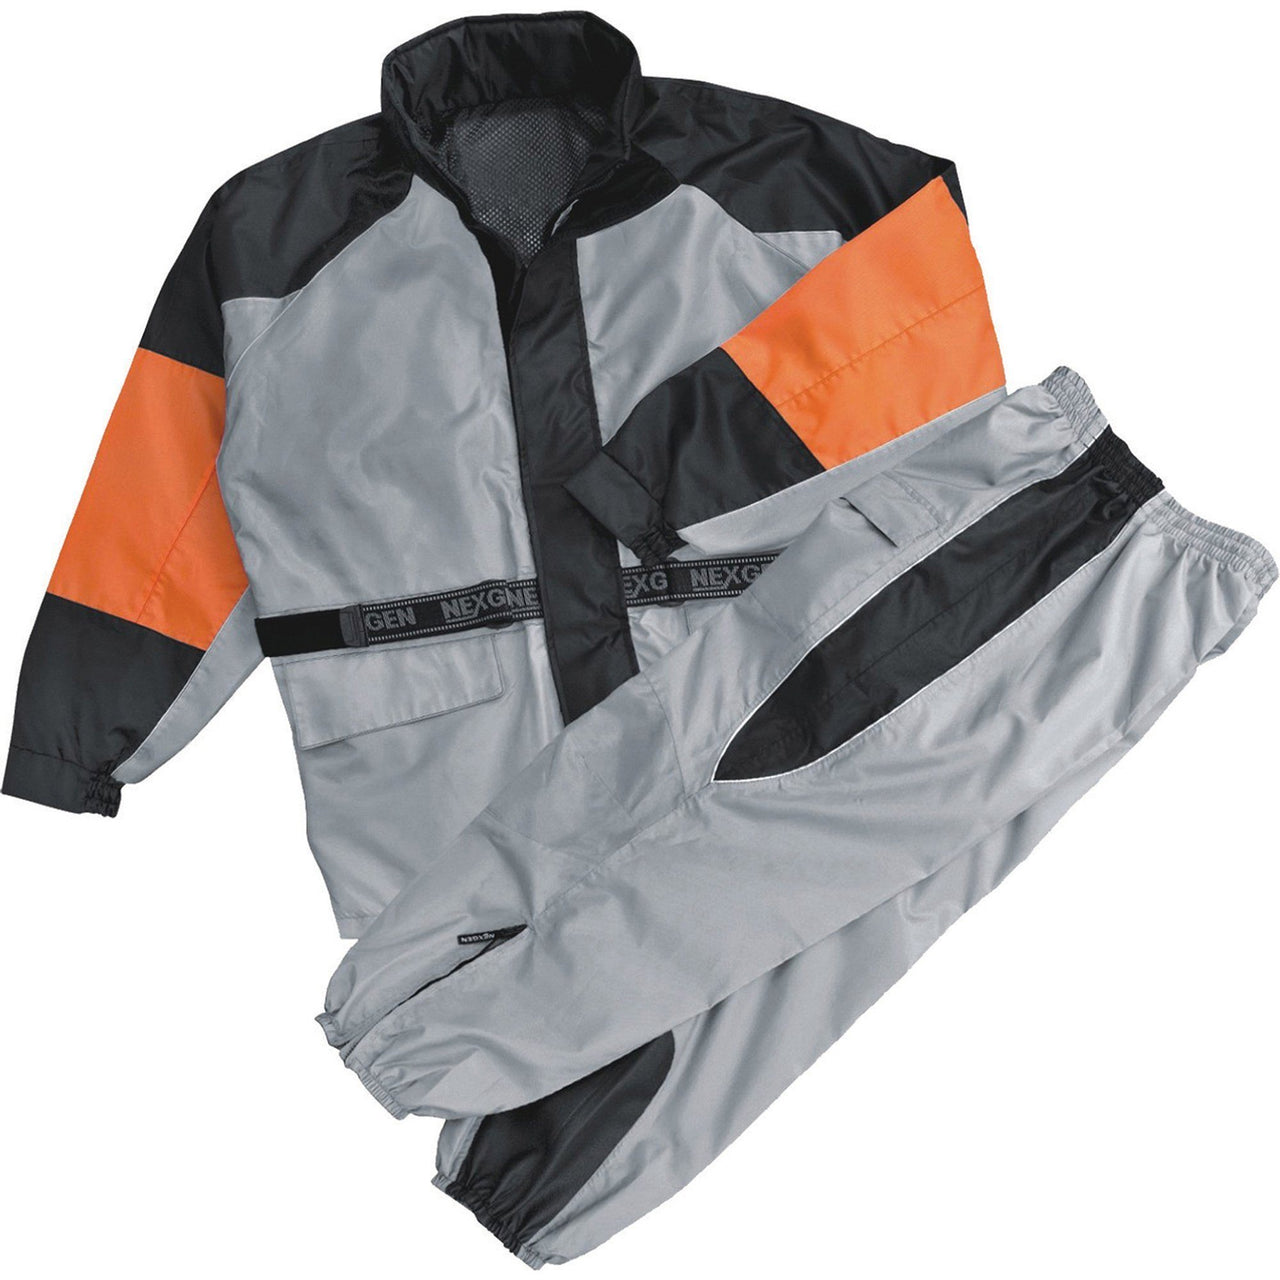 Ladies Orange & Silver Rain Suit Water Resistant w Reflective Piping - HighwayLeather